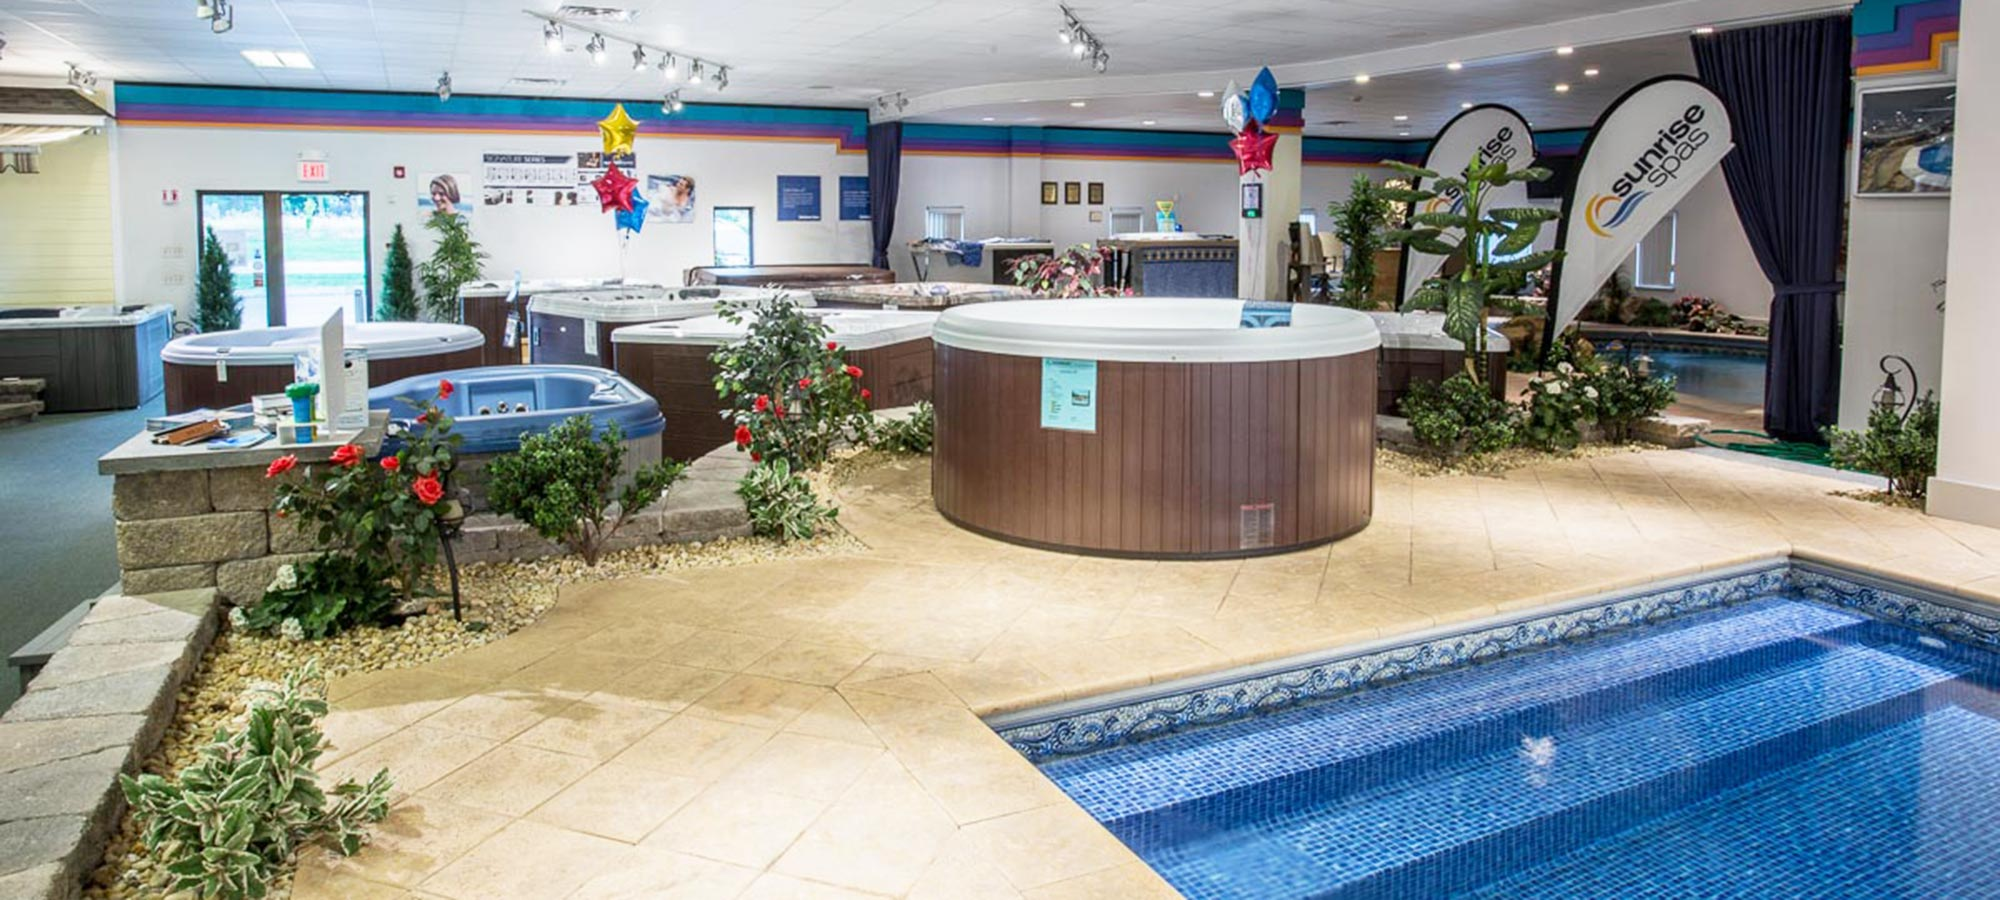 North Eastern Pool & Spa showroom inside